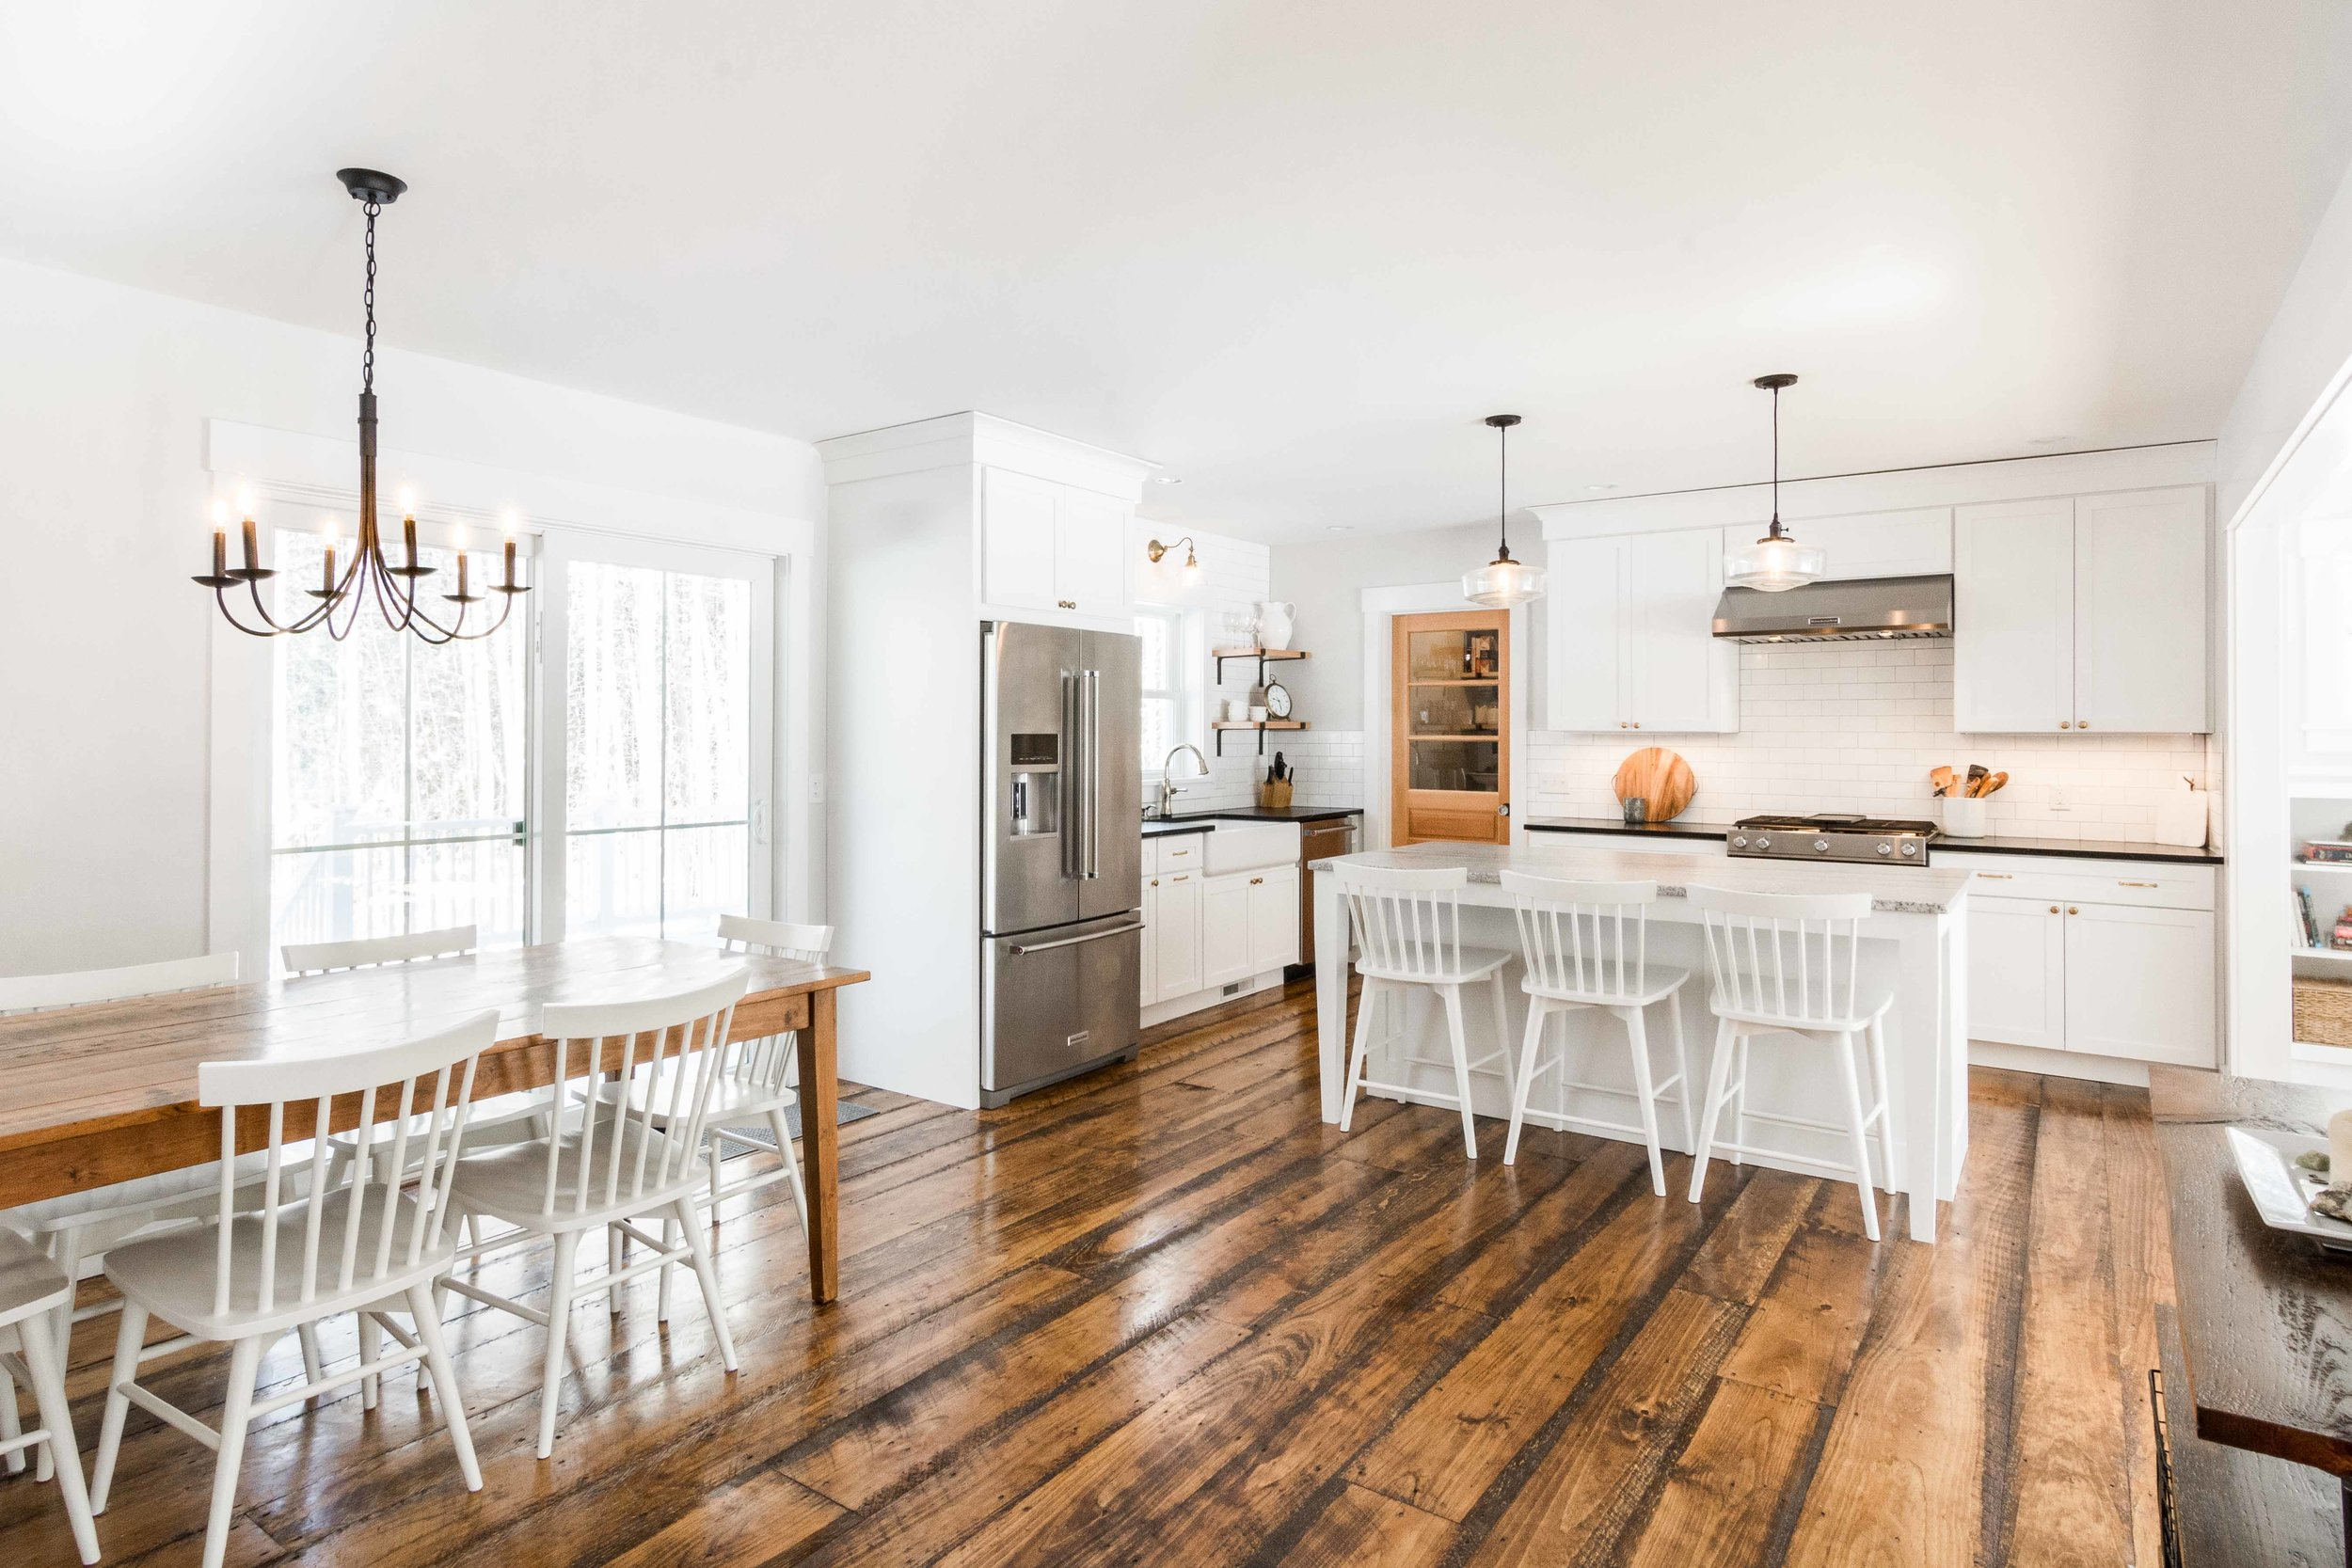 Pleasant River Farmhouse, Windham, Maine, Kitchen and Dining Space